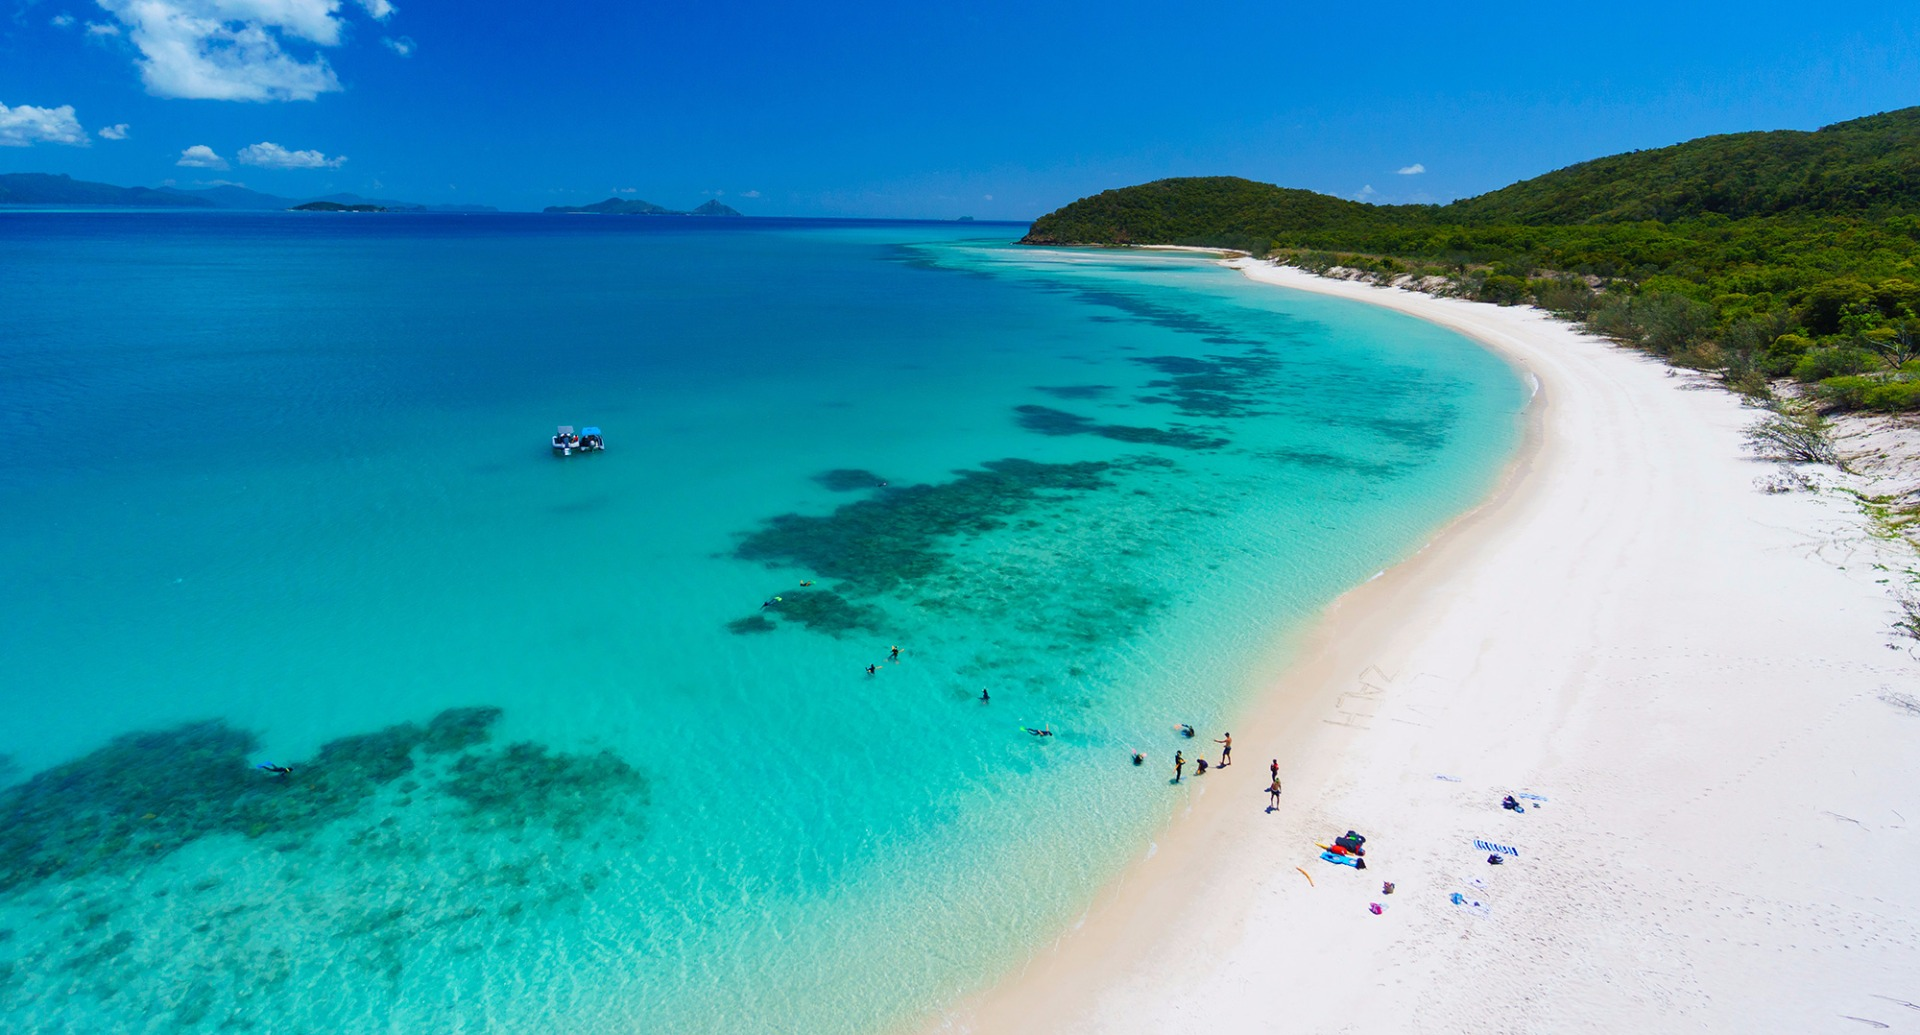 whiteheaven beach - places to visit in the World